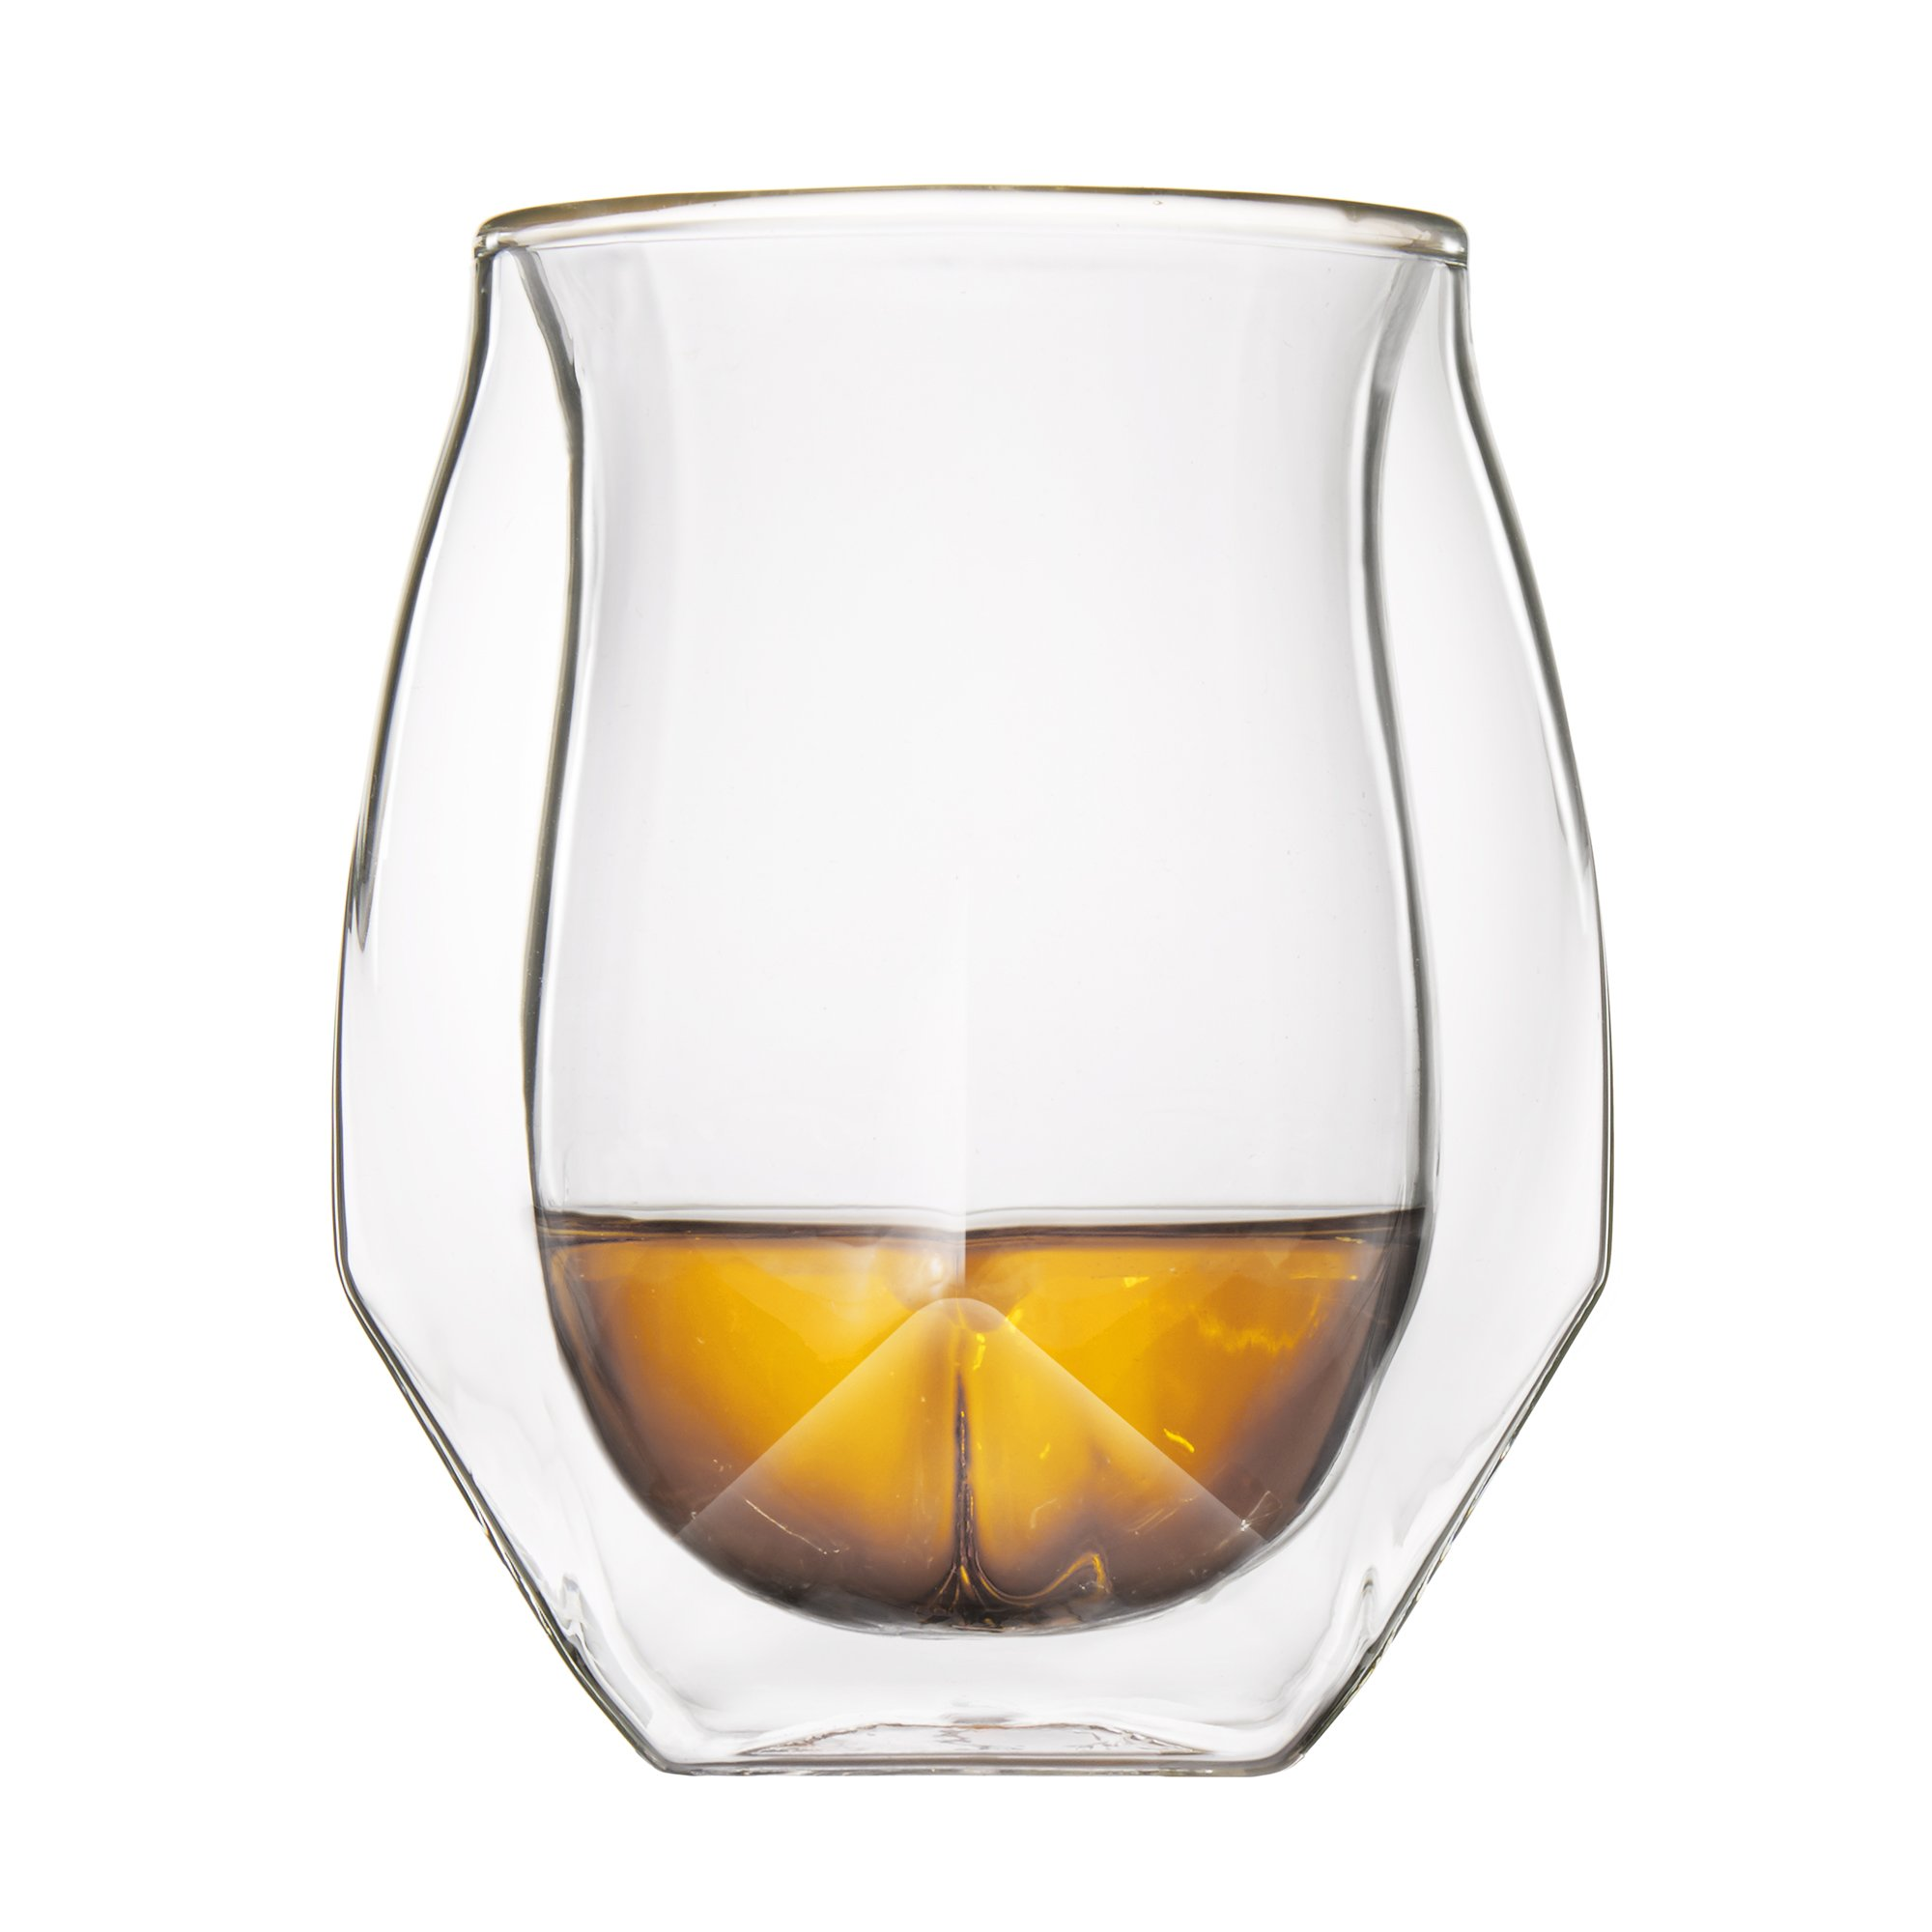 Norlan Whisky Glass, Set of 2 by Norlan